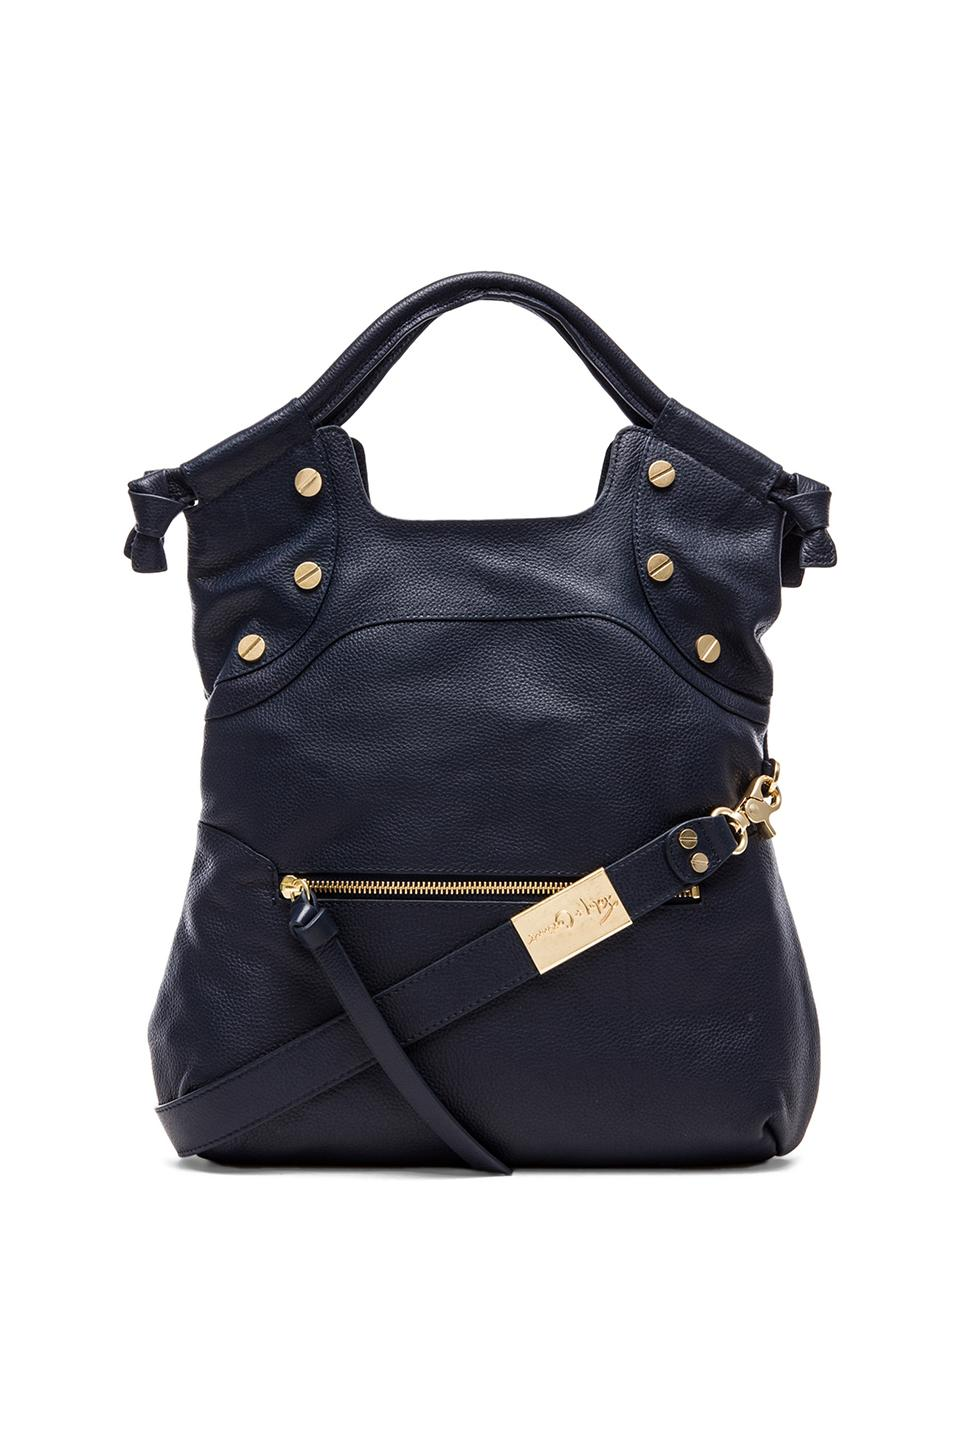 Foley + Corinna FC Lady Tote in Navy